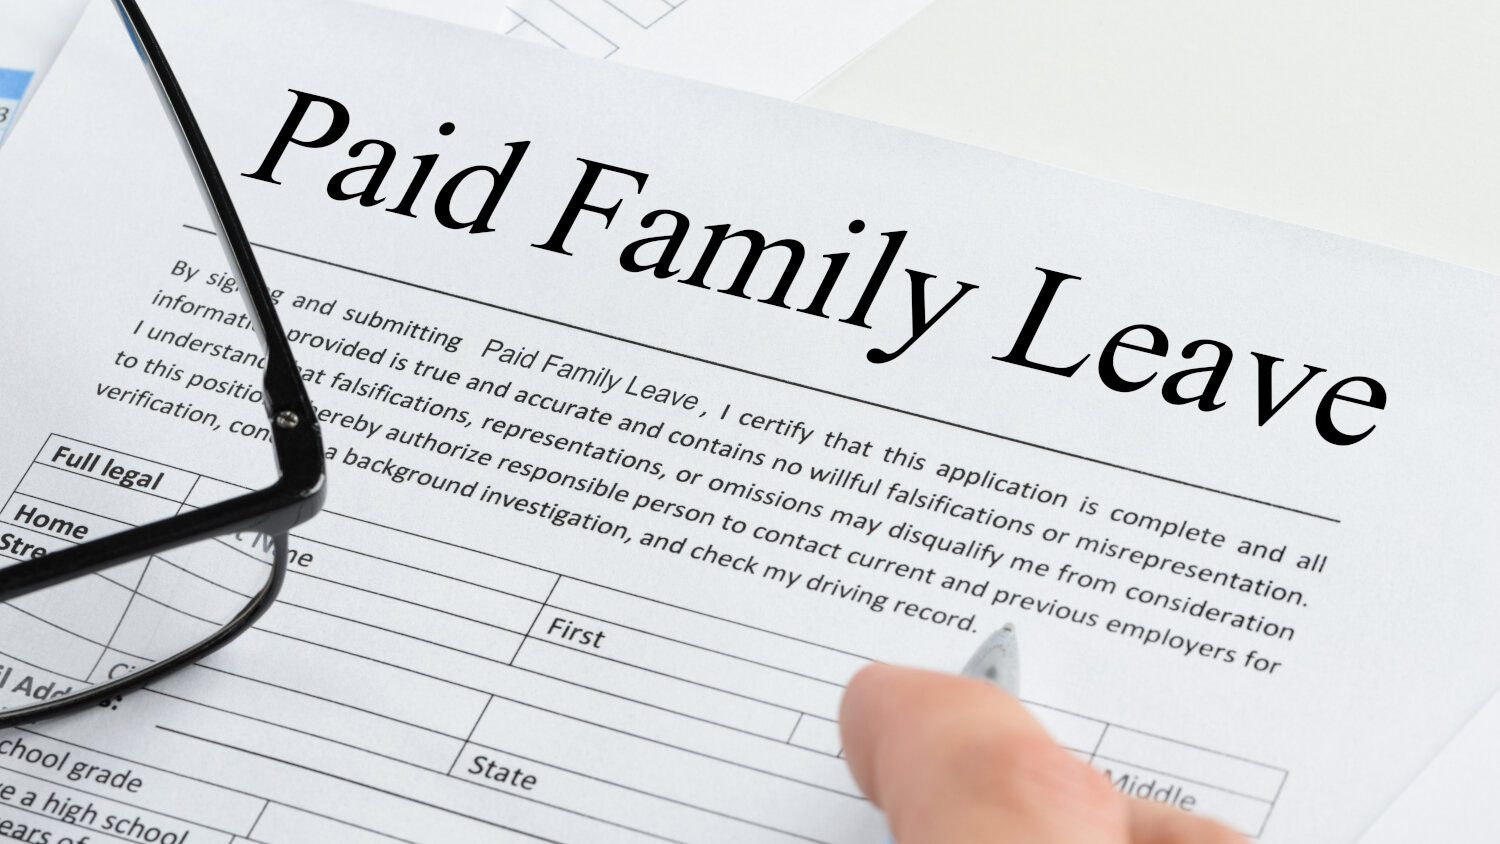 The Department of Labor has issued new guidance on the Families First Coronavirus Response Act that may not require companies to offer paid leave in certain situations. (Photo: Shuttertstock)